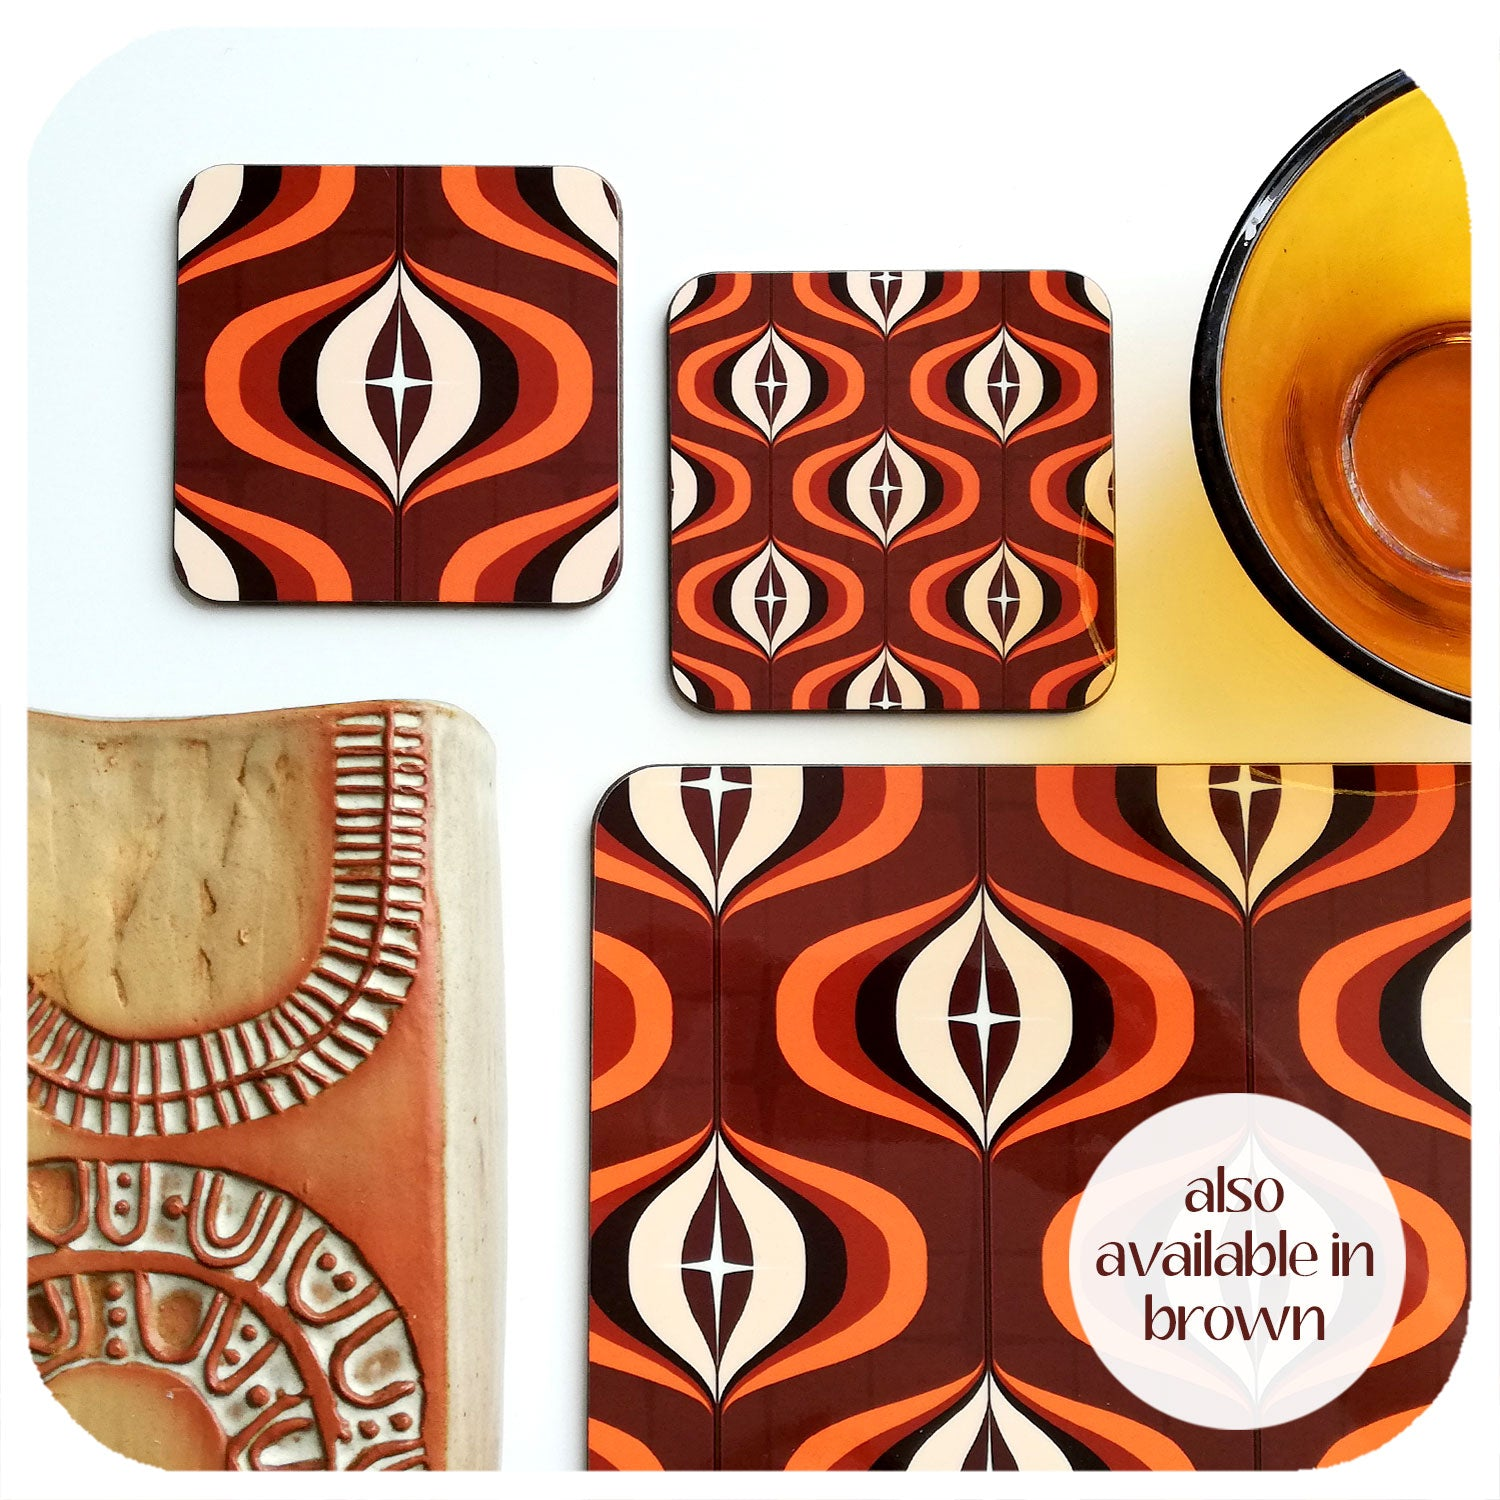 70s Op Art Tableware also available in Brown | The Inkabilly Emporium